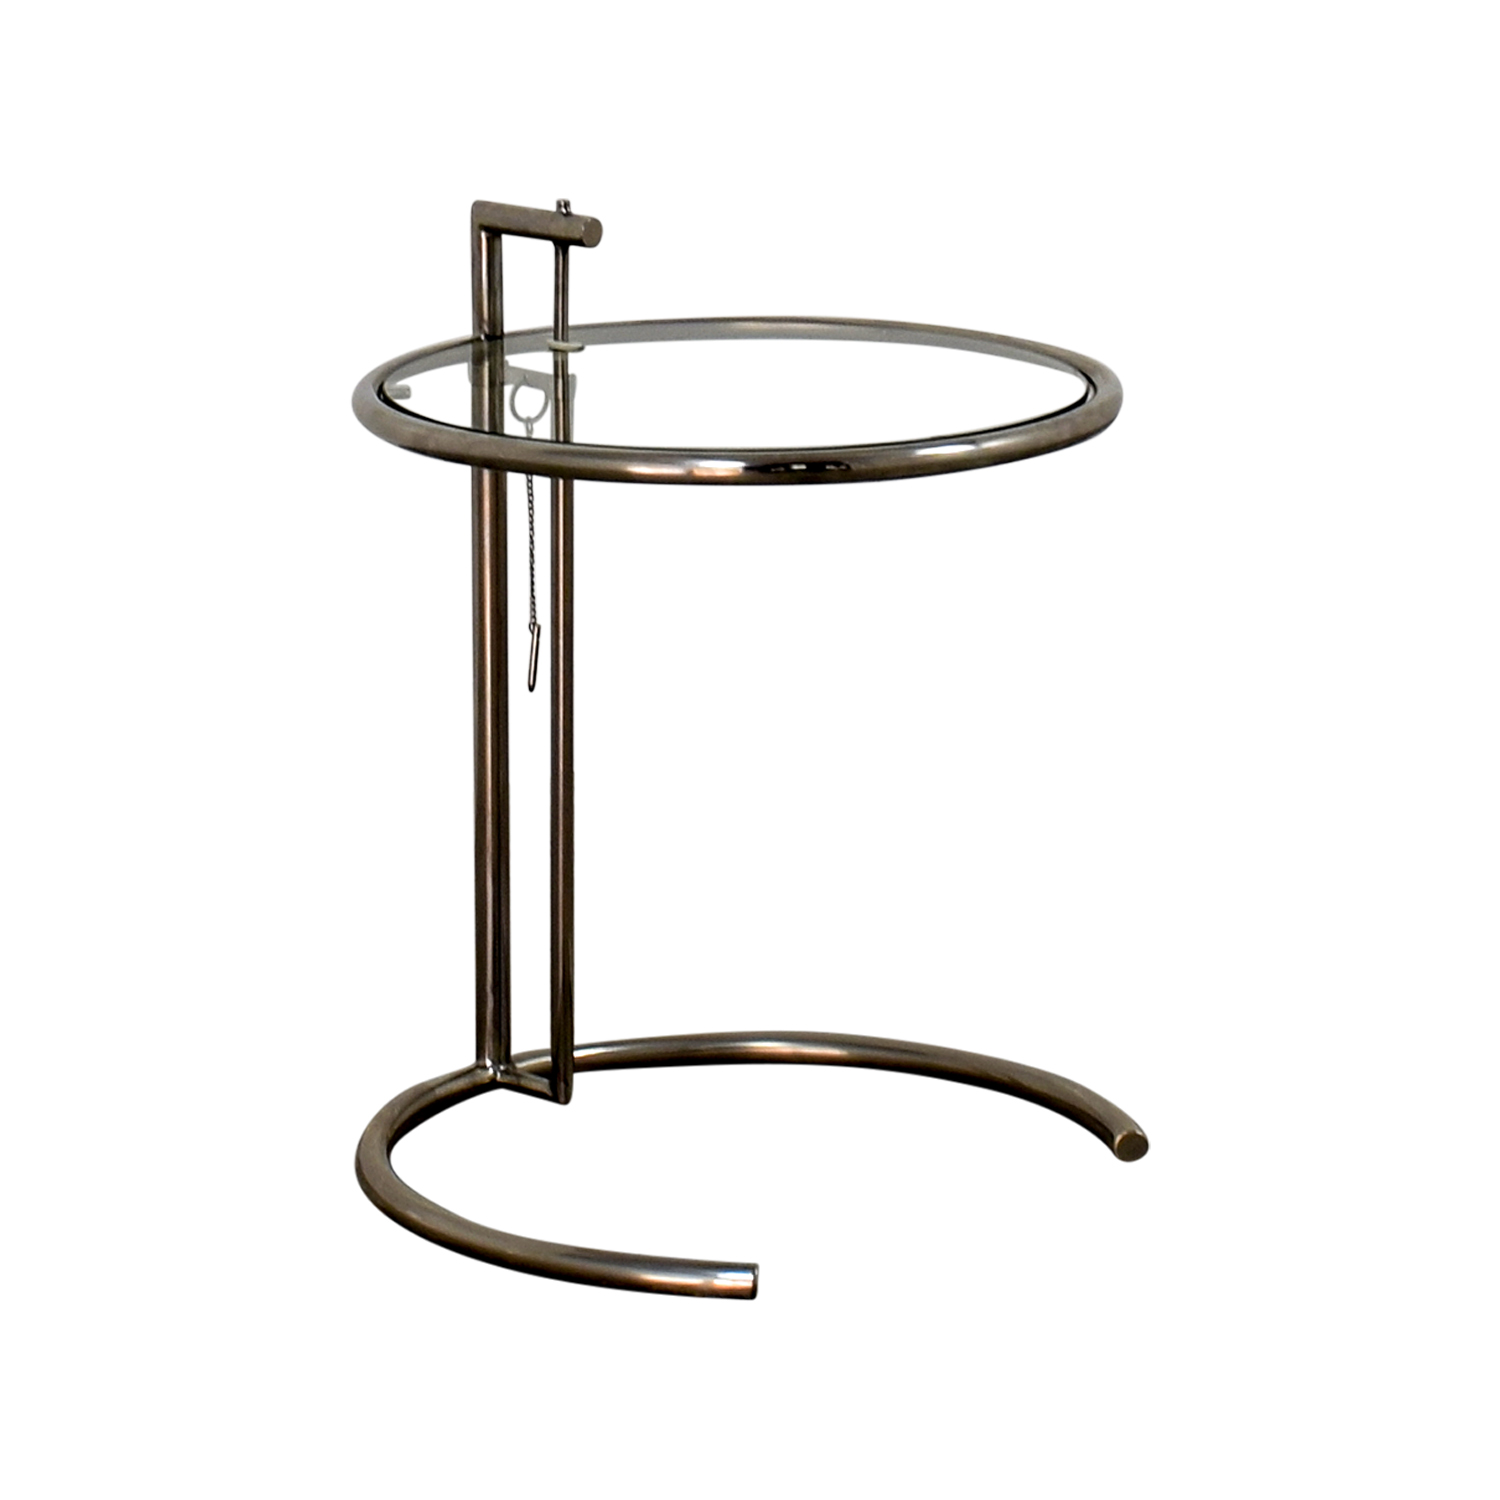 90 off eileen gray eileen gray glass and chrome side table tables. Black Bedroom Furniture Sets. Home Design Ideas